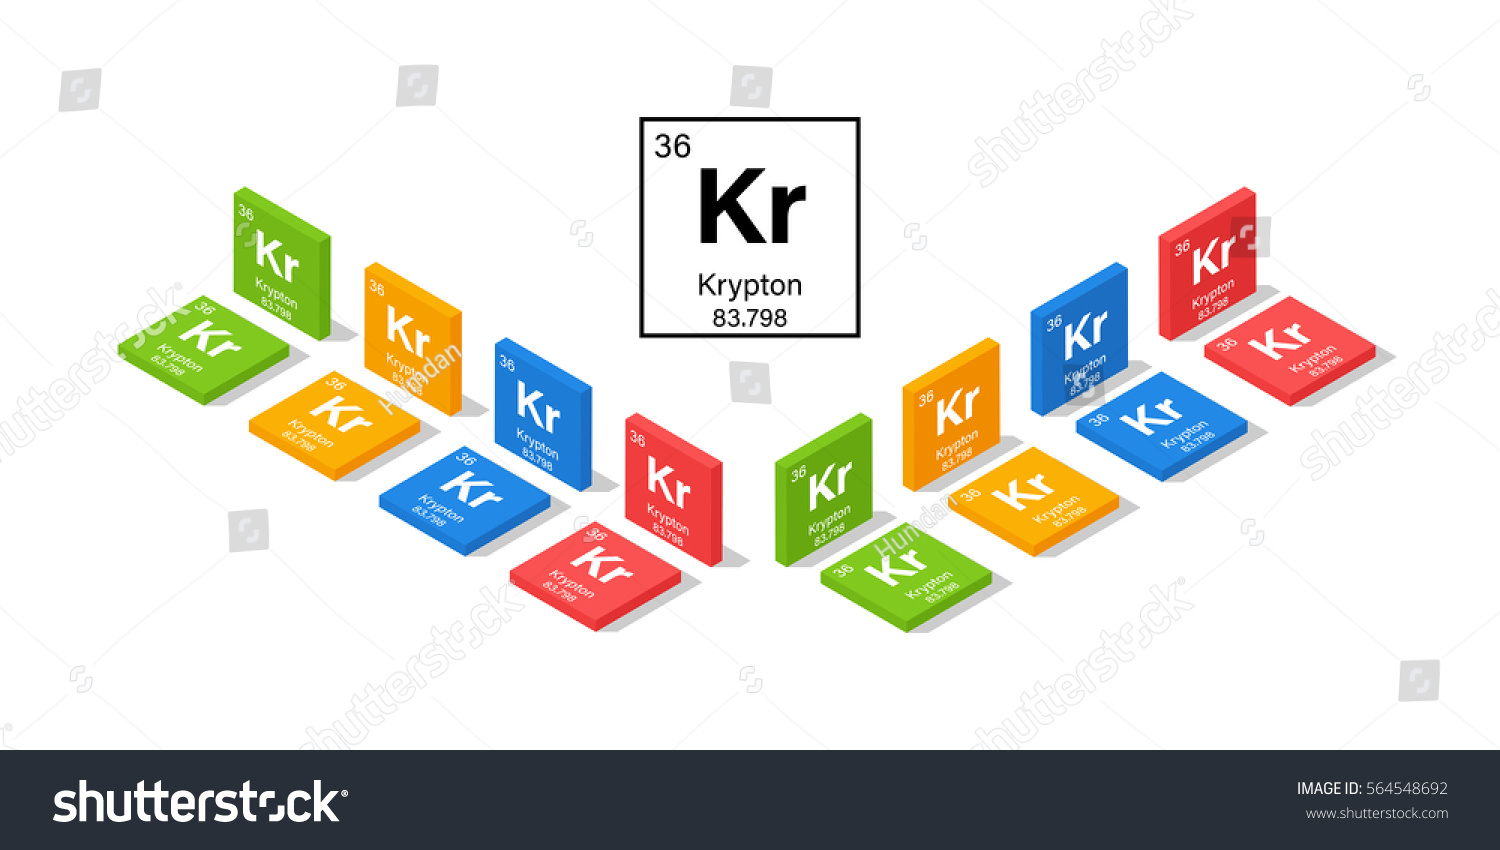 Periodic table krypton images periodic table images periodic table krypton image collections periodic table images krypton periodic table images periodic table images elements gamestrikefo Choice Image